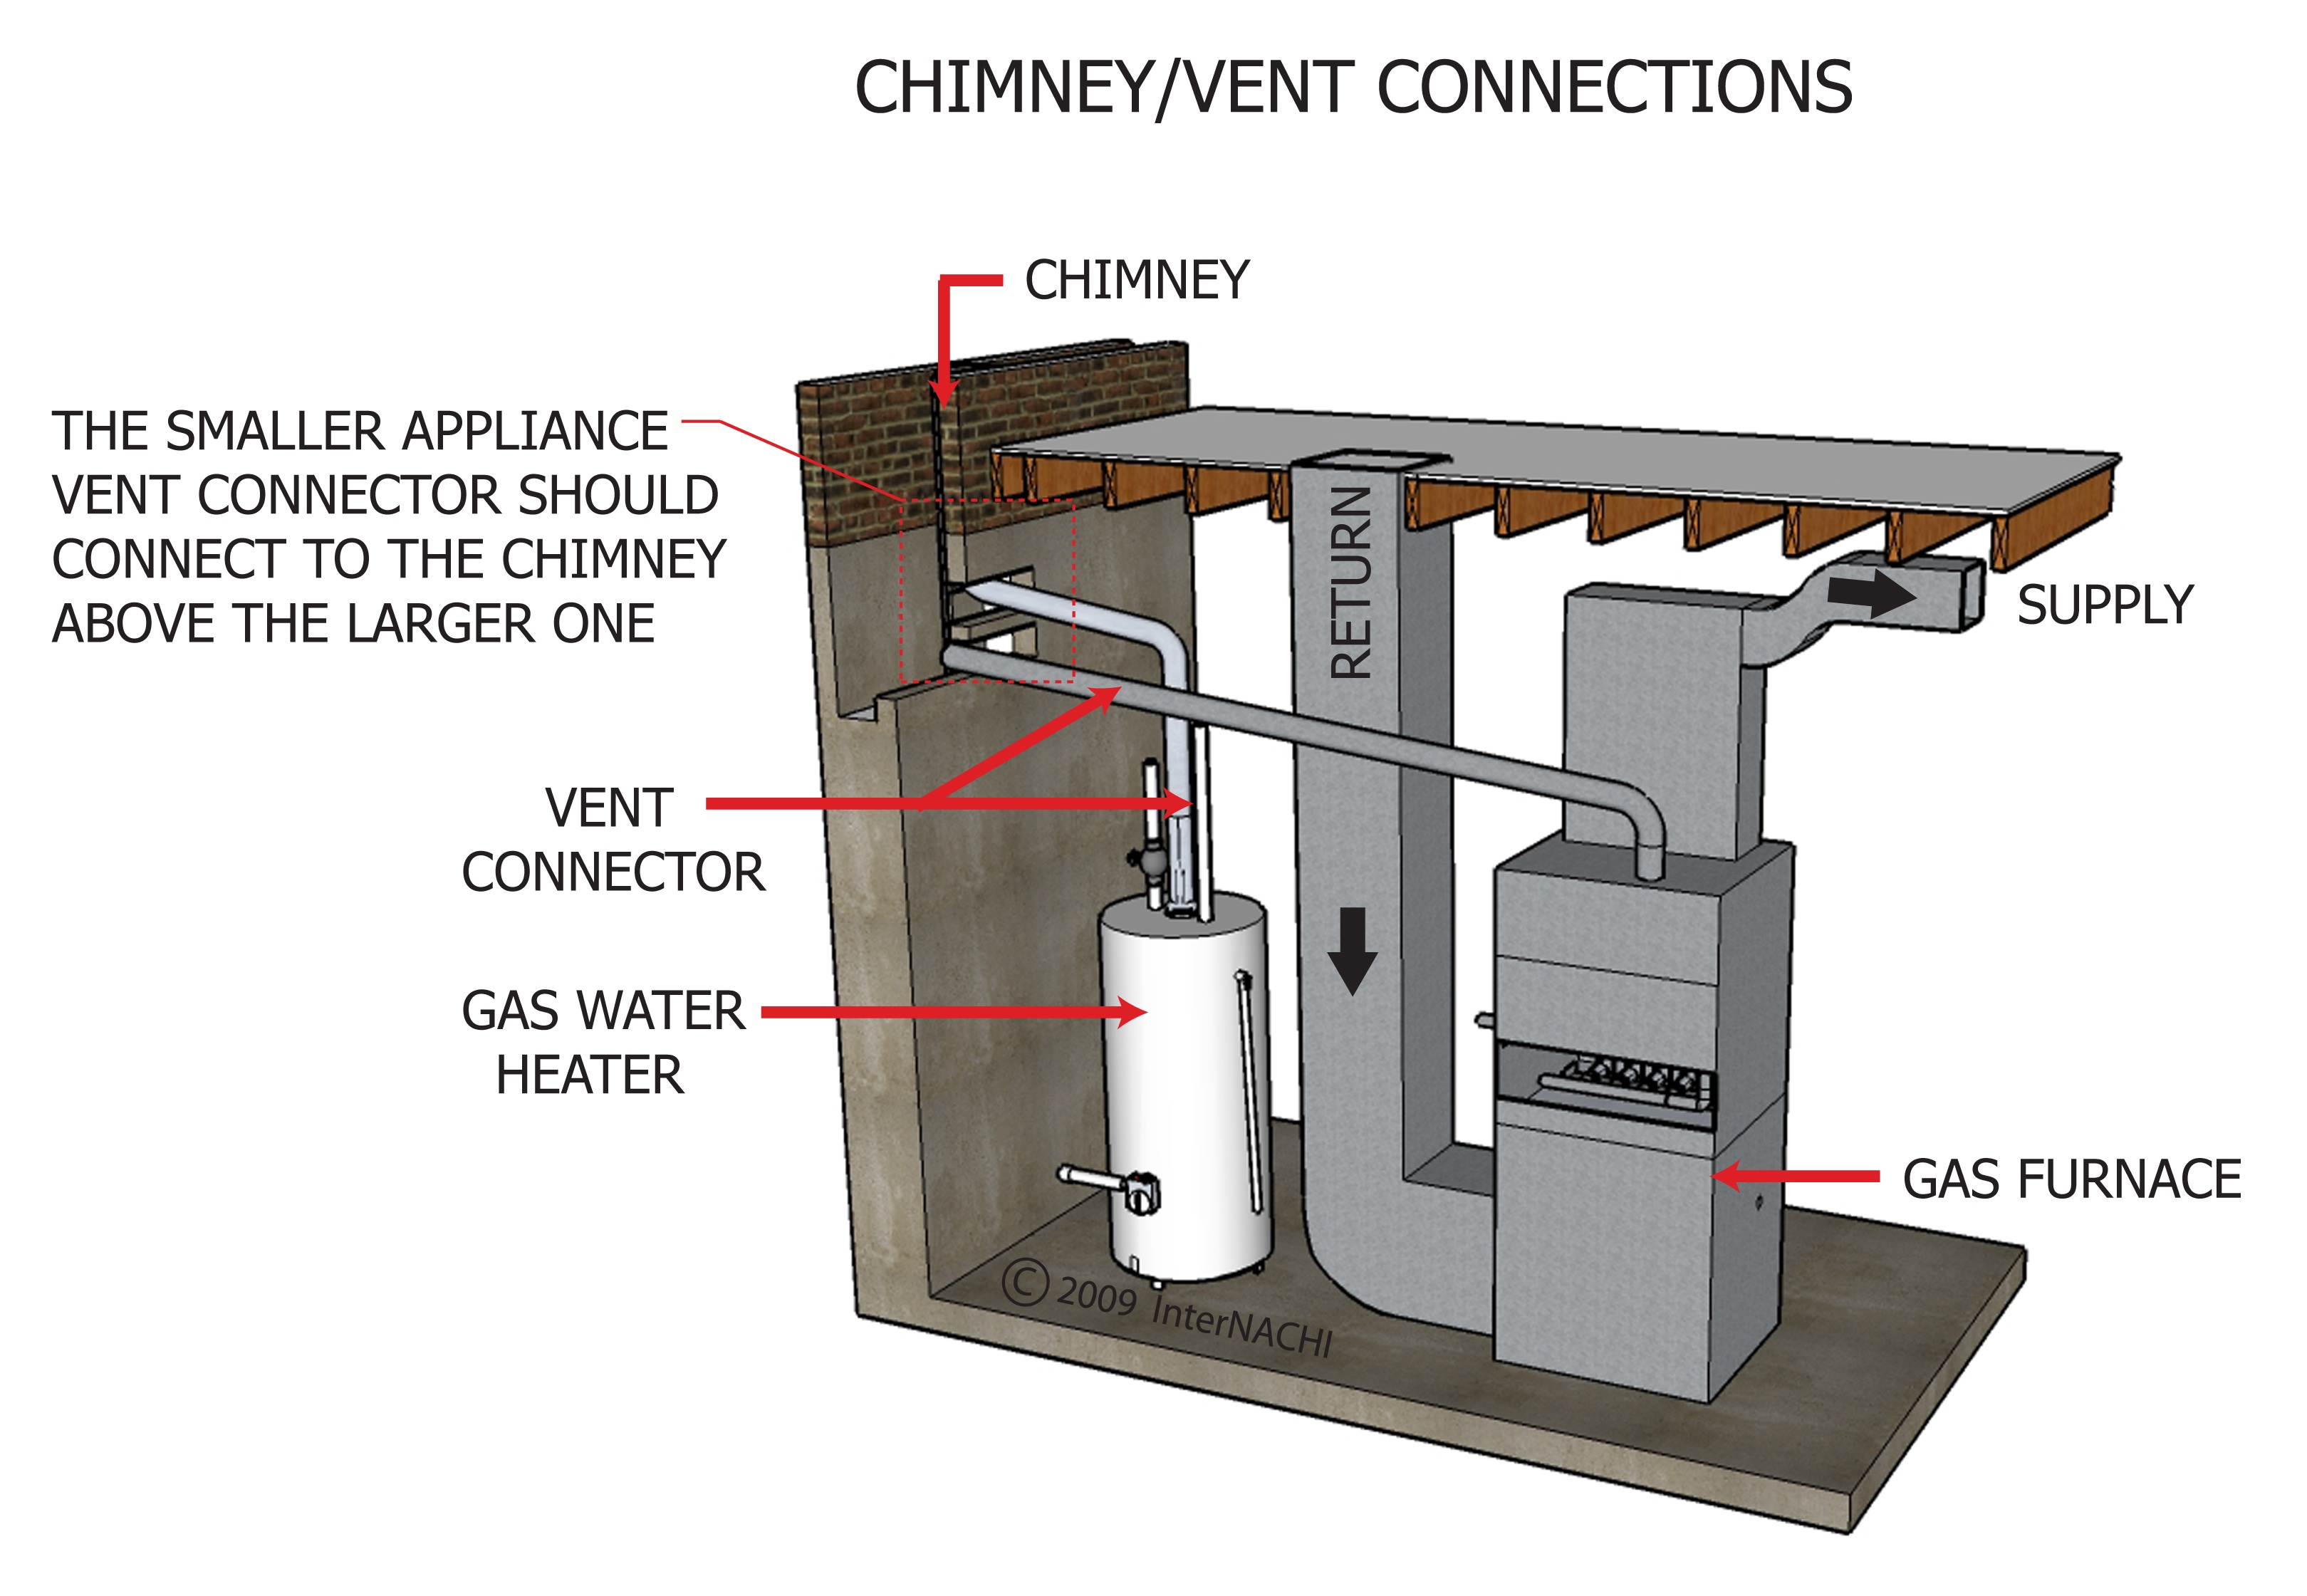 Chimney vent connection.